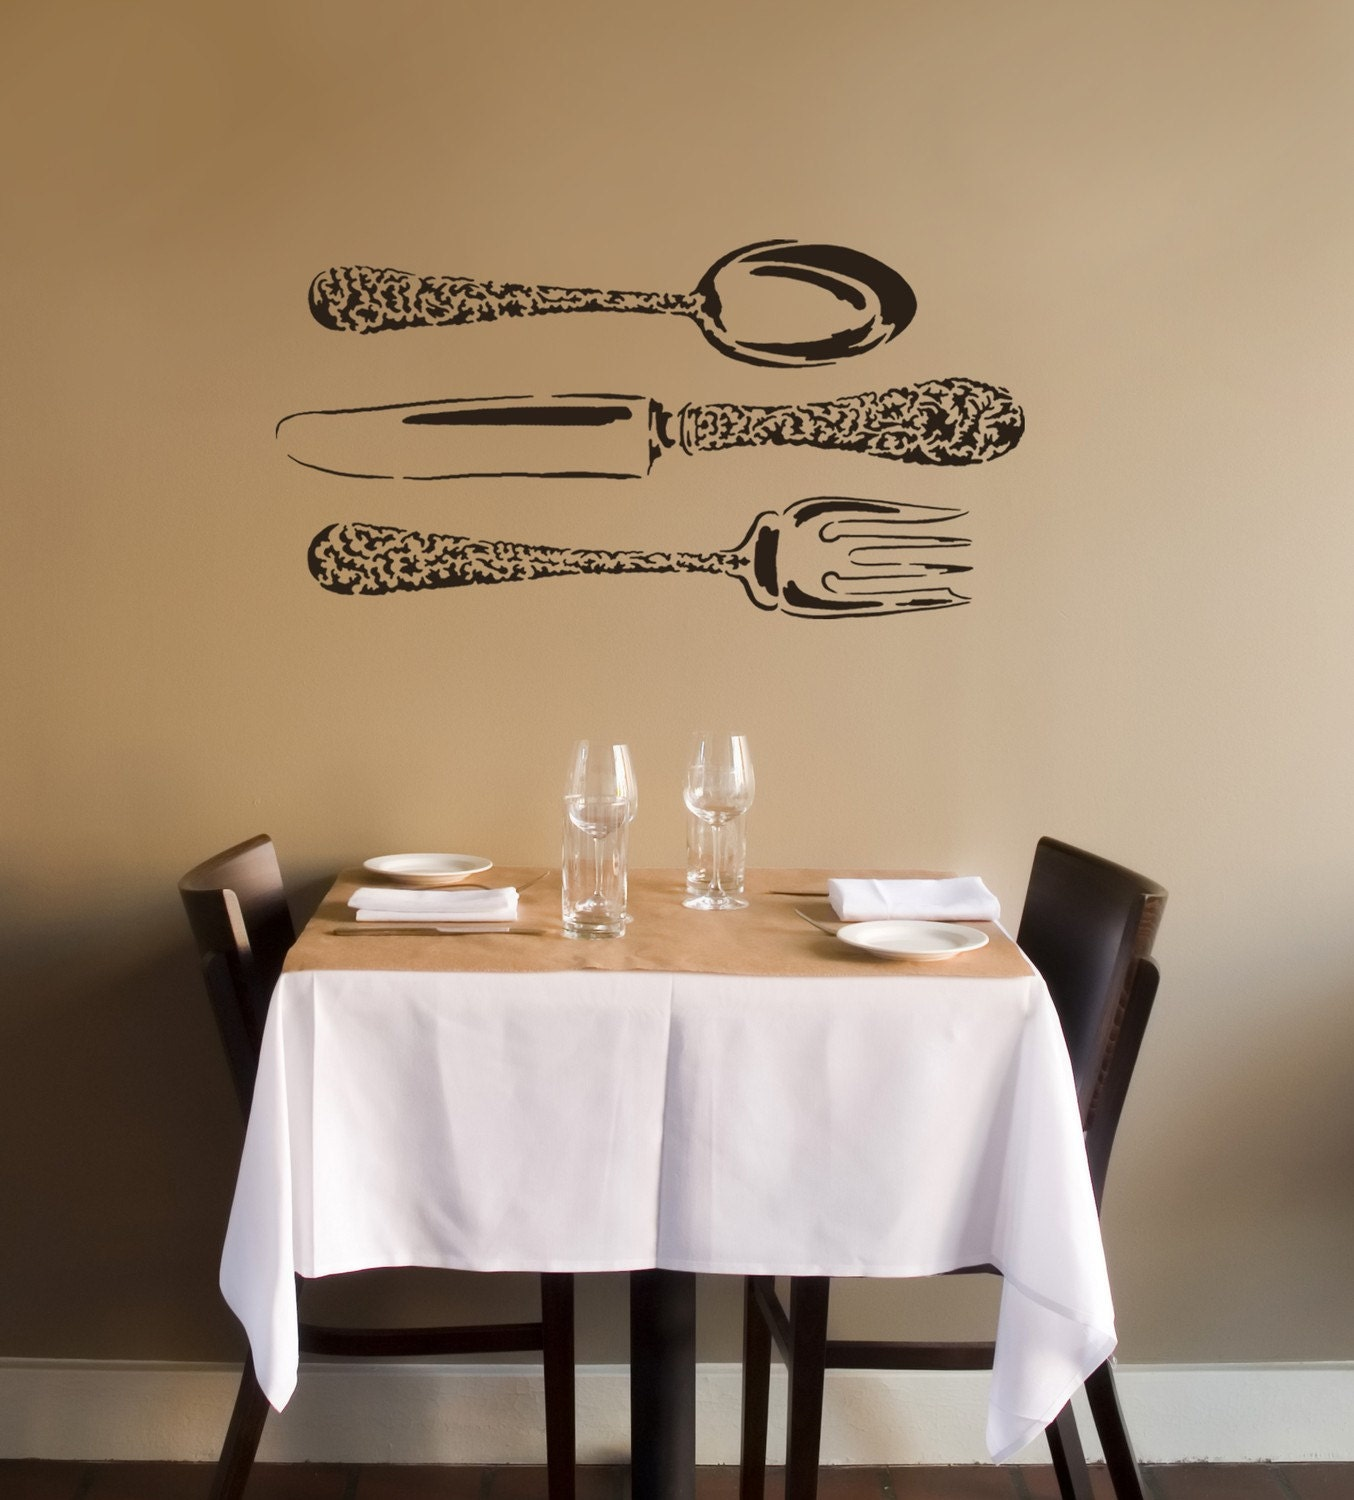 Inexpensive wall stencils gallery home wall decoration ideas inexpensive wall stencils choice image home wall decoration ideas inexpensive wall stencils choice image home wall amipublicfo Images